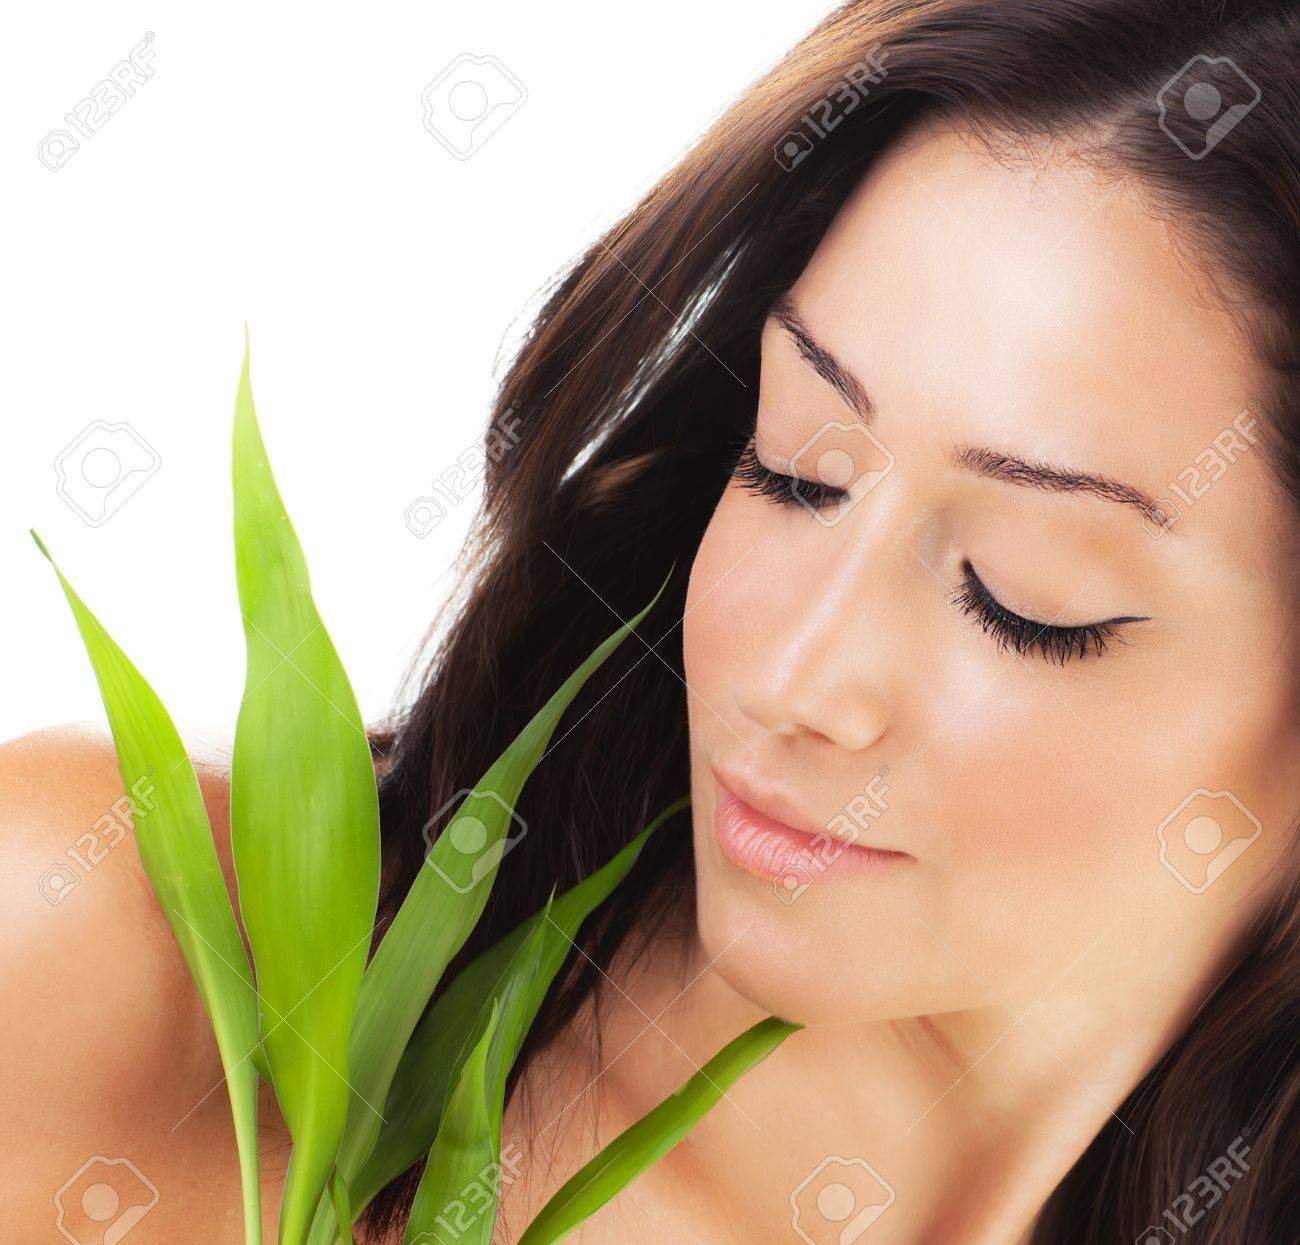 Healthy woman relaxing at spa, sensual female portrait with green fresh leaves, young lady with spring plant, girl isolated on white background, skin care concept Stock Photo - 12589042